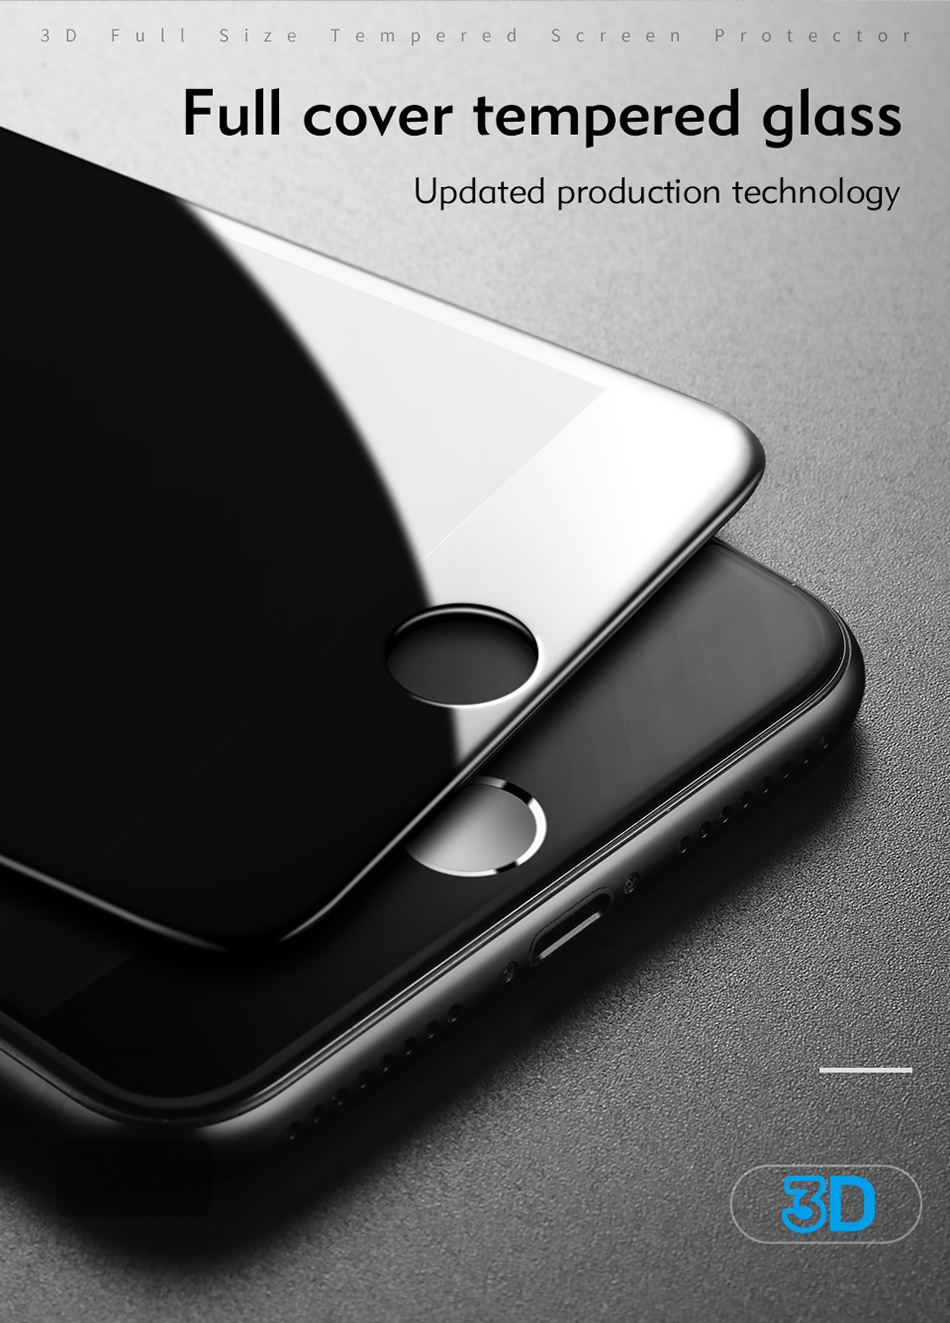 Benks 3D Tempered Glass Film For iPhone 8 7 6s Full Curved Screen Protector 0.23mm Cover Protection Front Film For iphone 6 Plus (4)